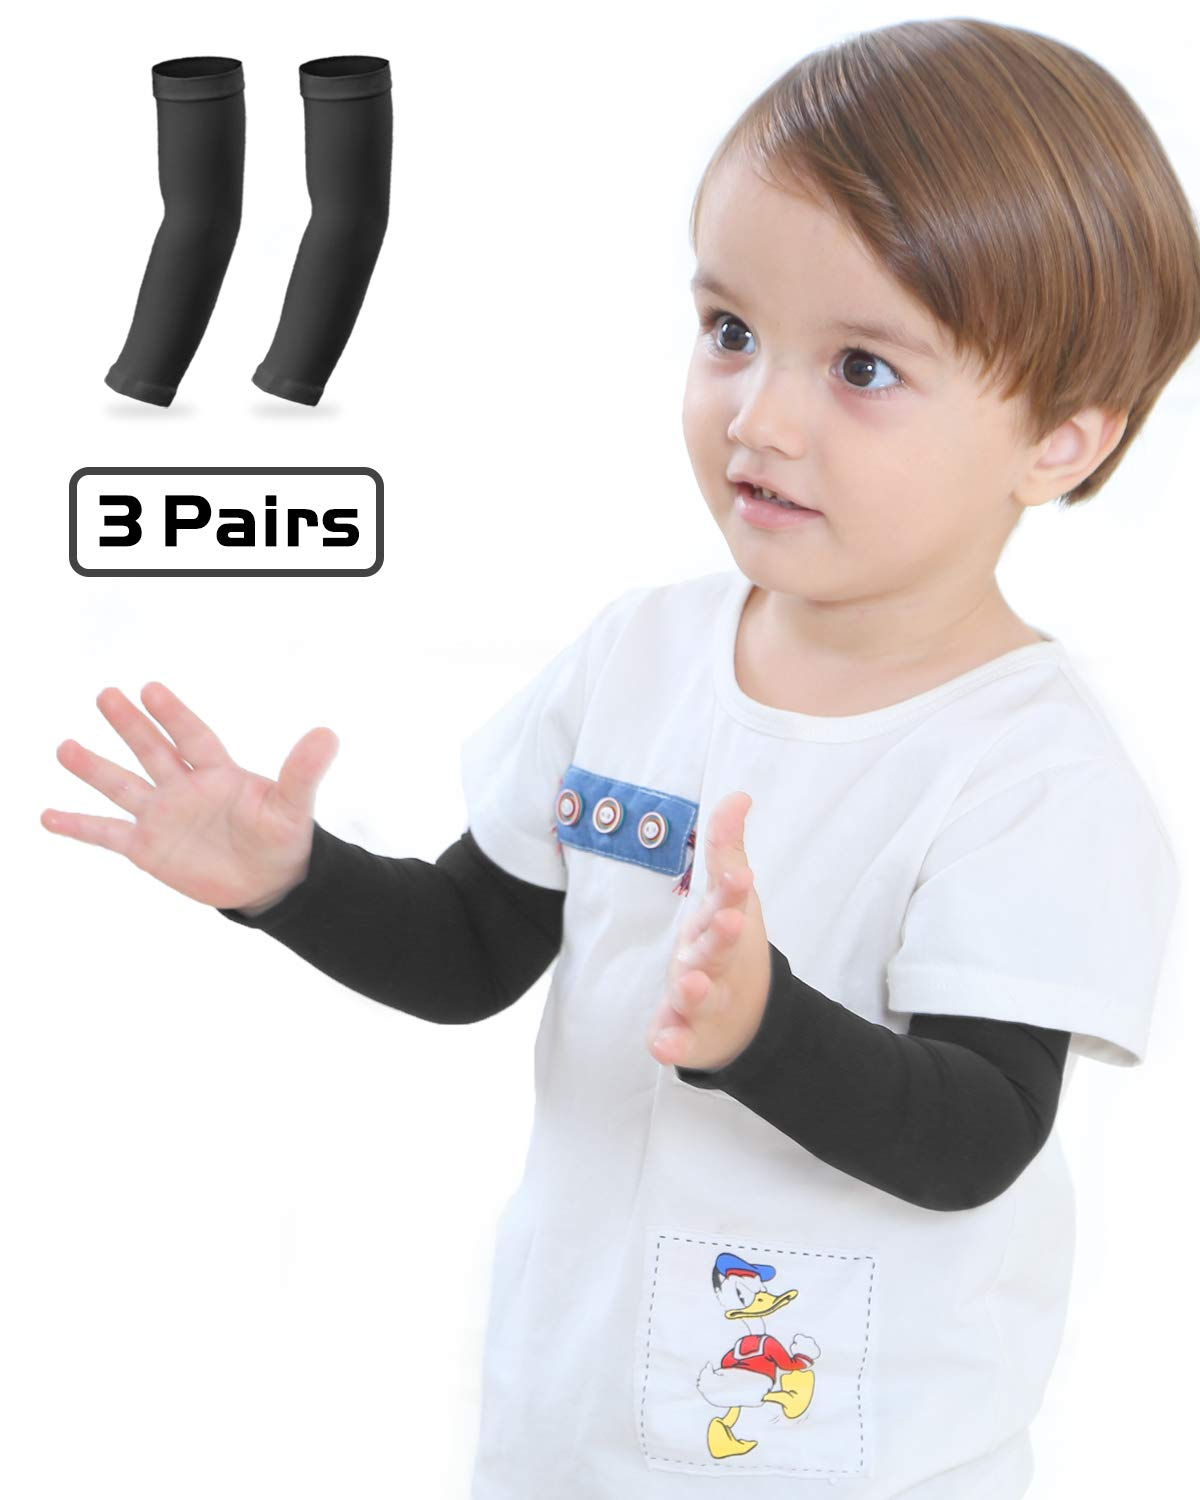 Arm Sleeves for Kids, Toddlers, UPF 50 UV Sun Protection Sleeves to Cover Arms